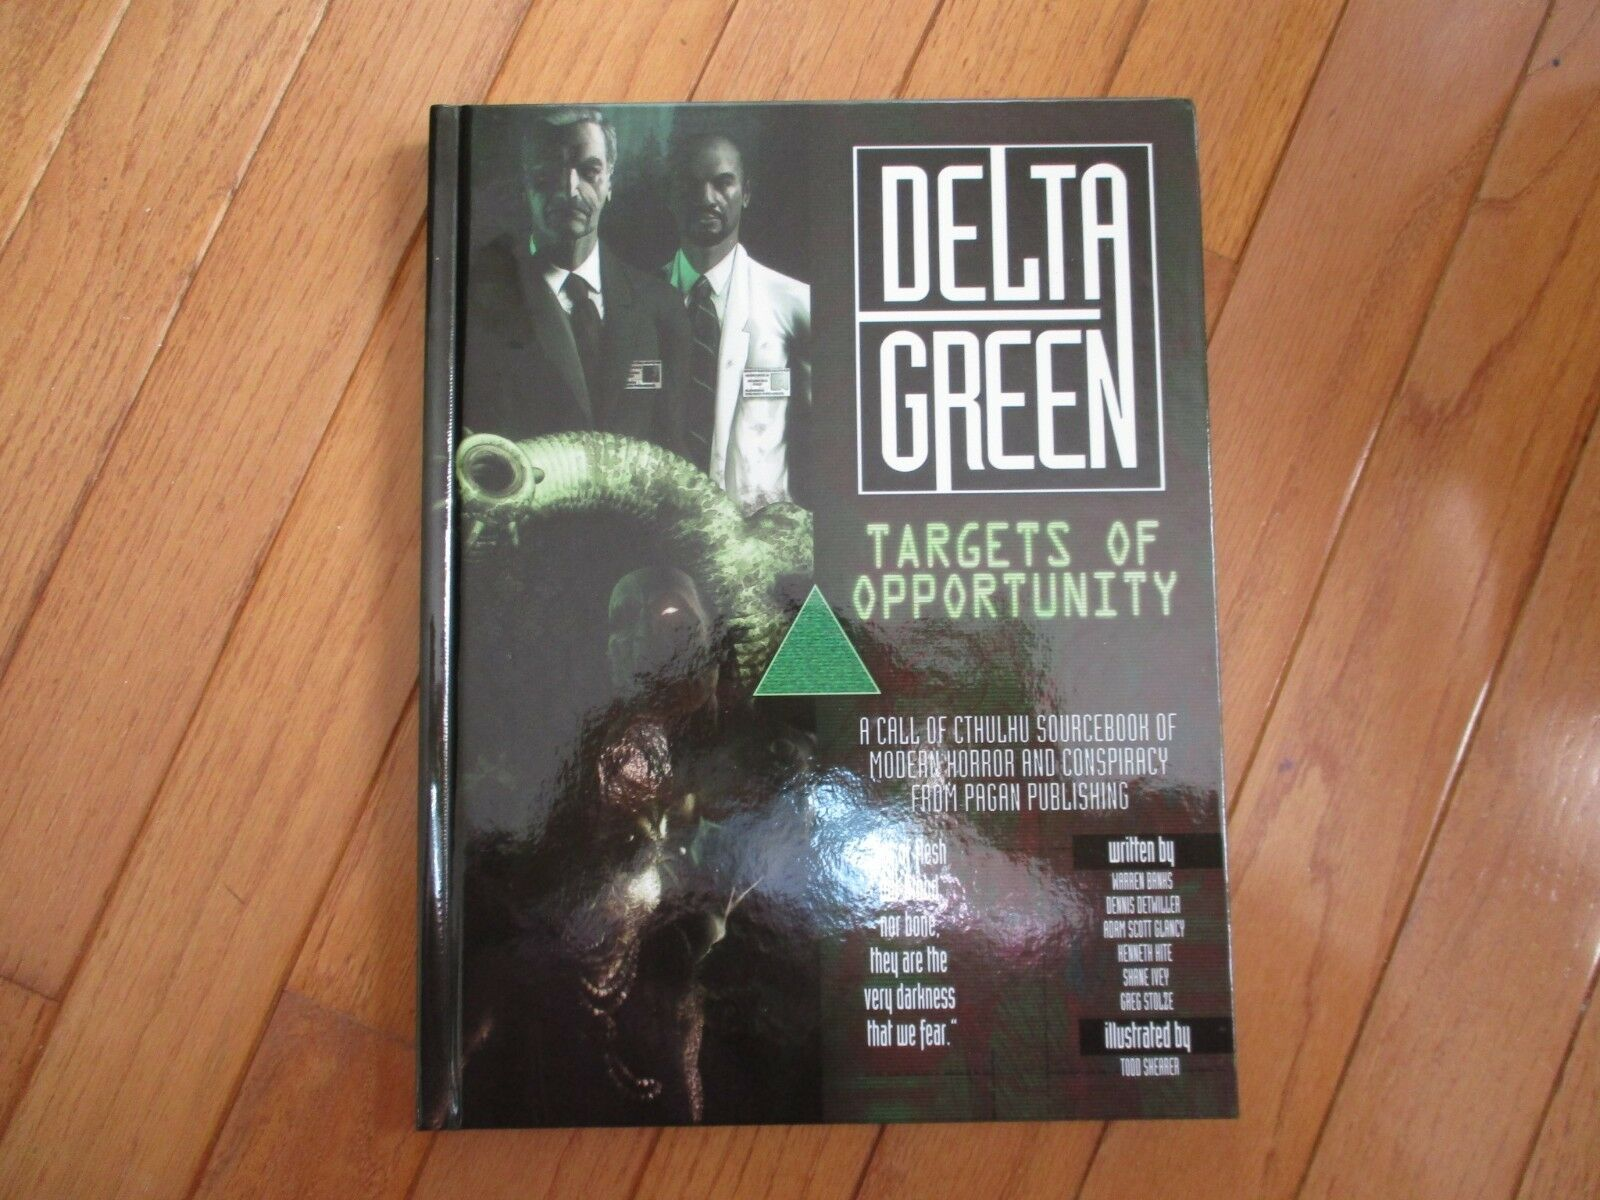 Call of Cthulhu Delta verde Targets of Opportunity HC